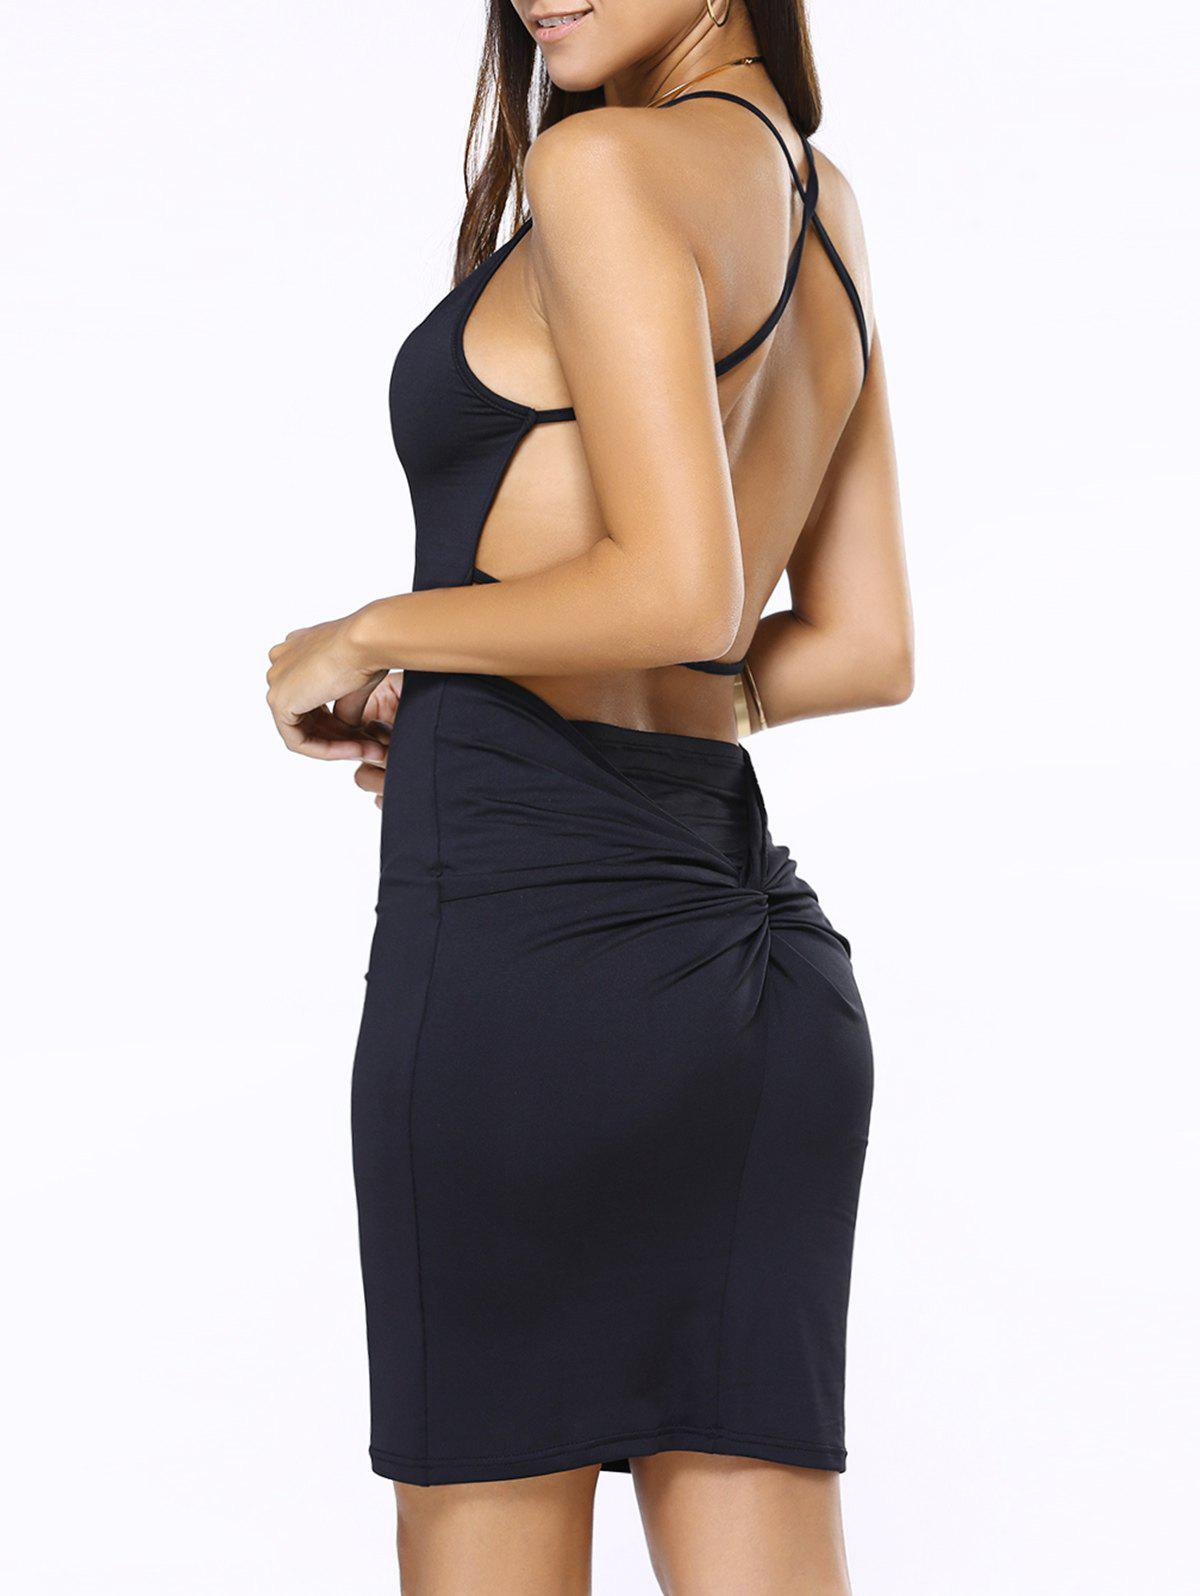 Criss Cross Low Back Slip Club Dress - BLACK S